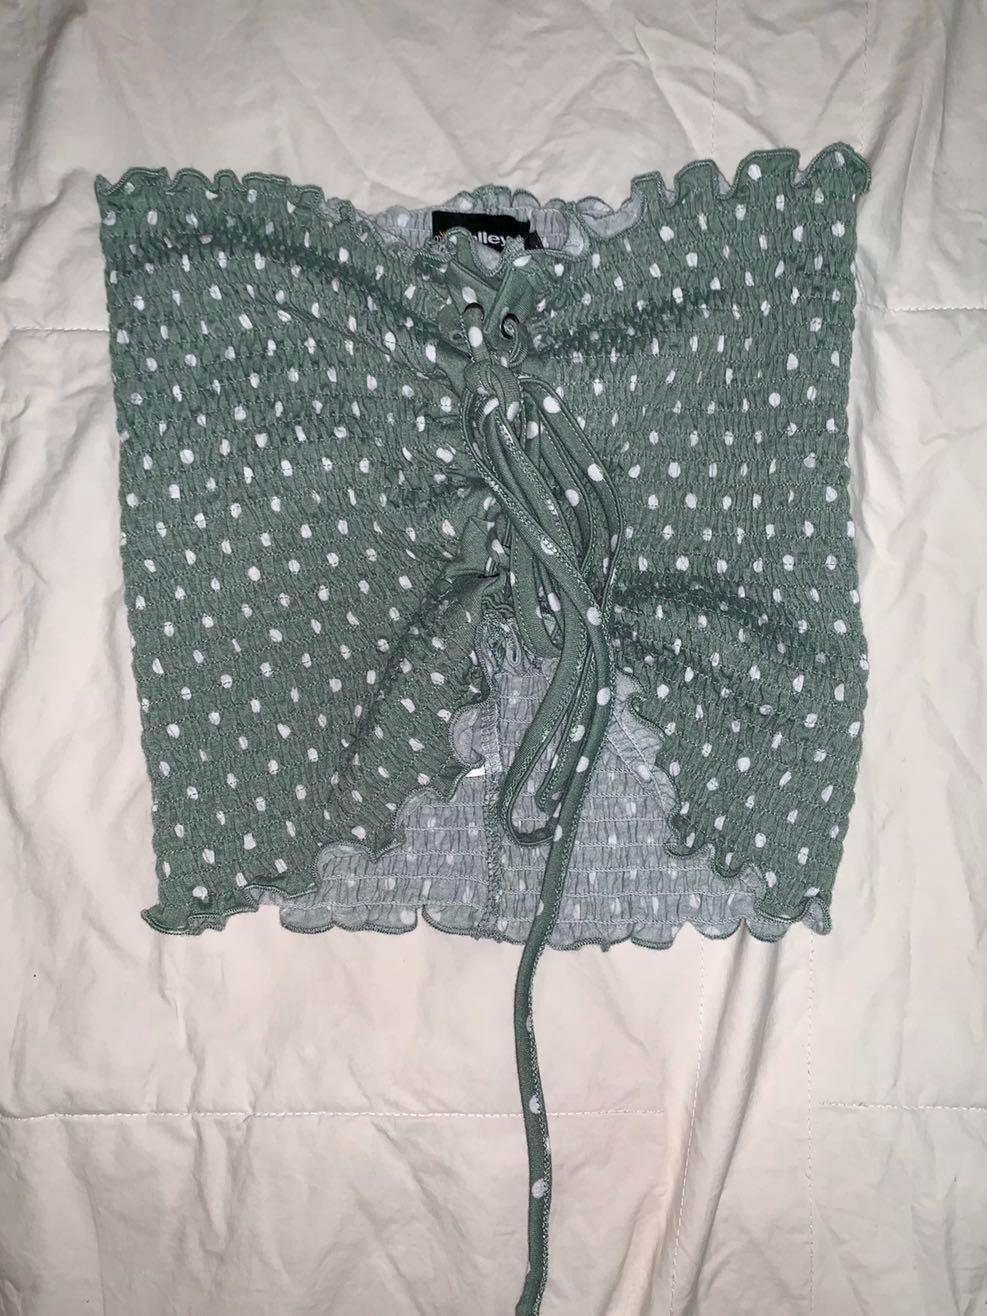 Miss Valley (Valley Girl) Mint Green Spotted Crop - AU Size 8